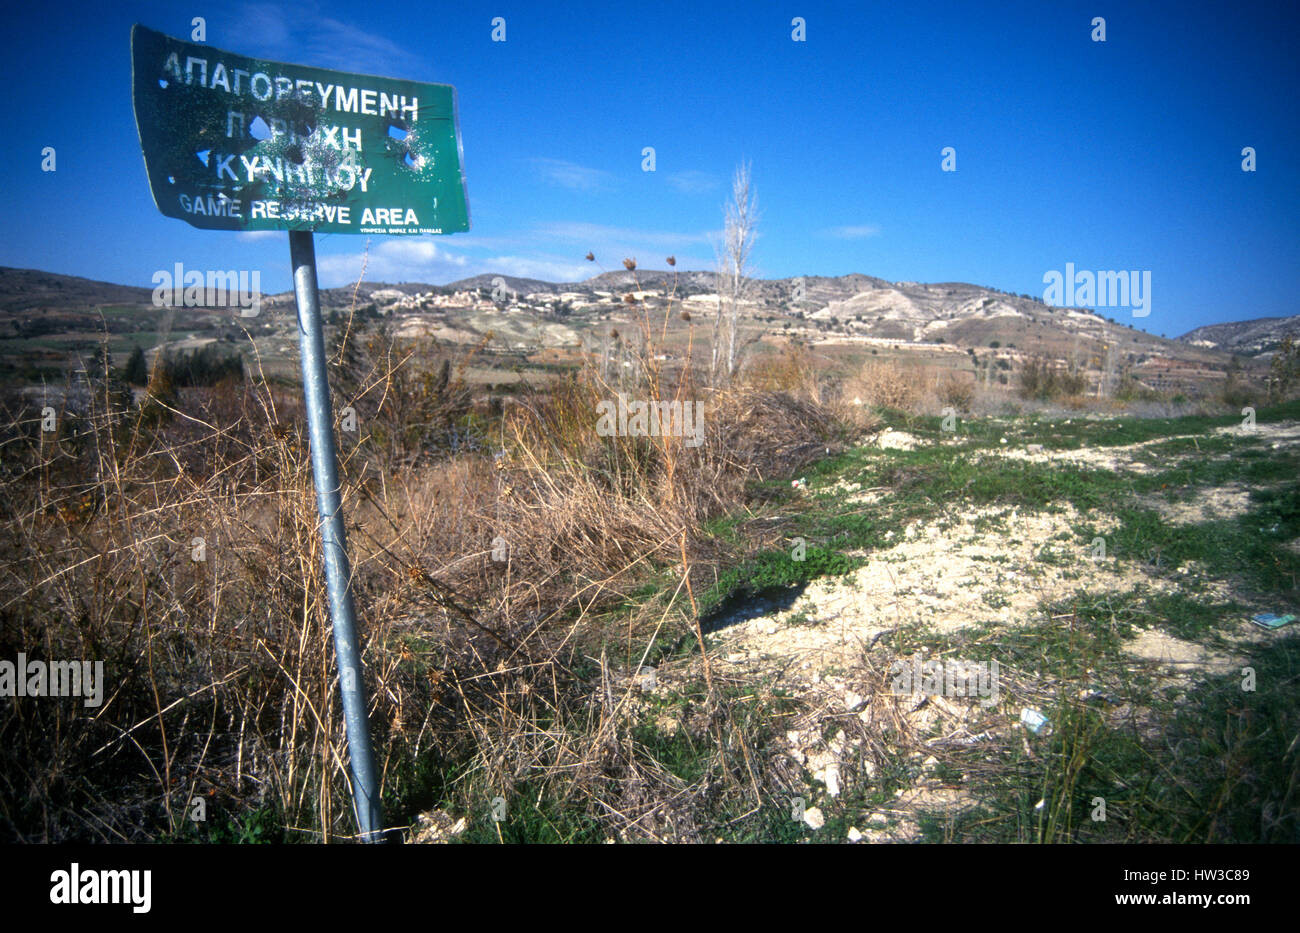 Cyprus. Hunters shoot 'Game Reserve Area sign'       full of holes. Songbirds beware! - Stock Image